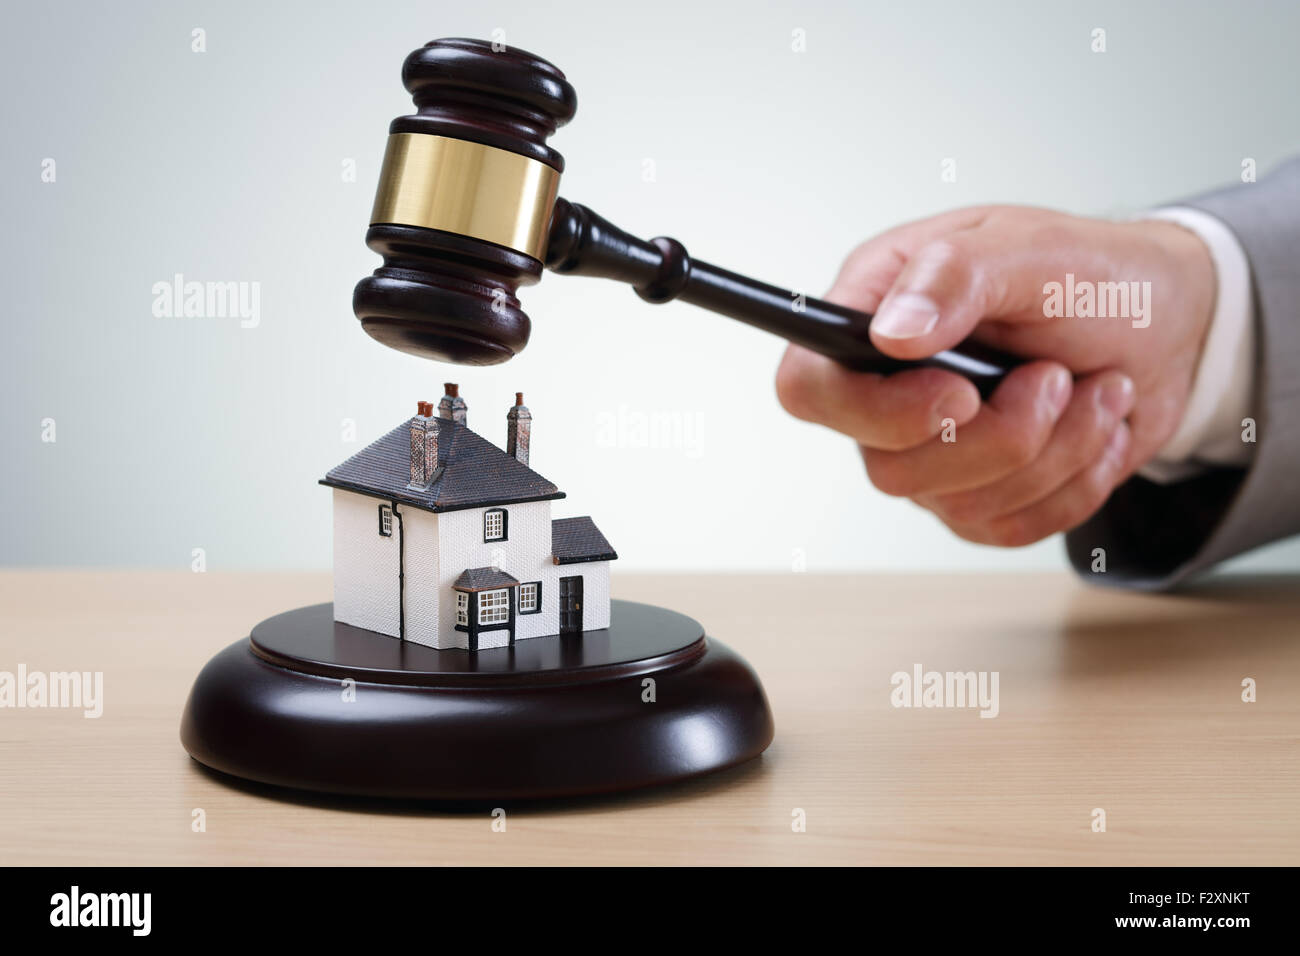 House auction - Stock Image